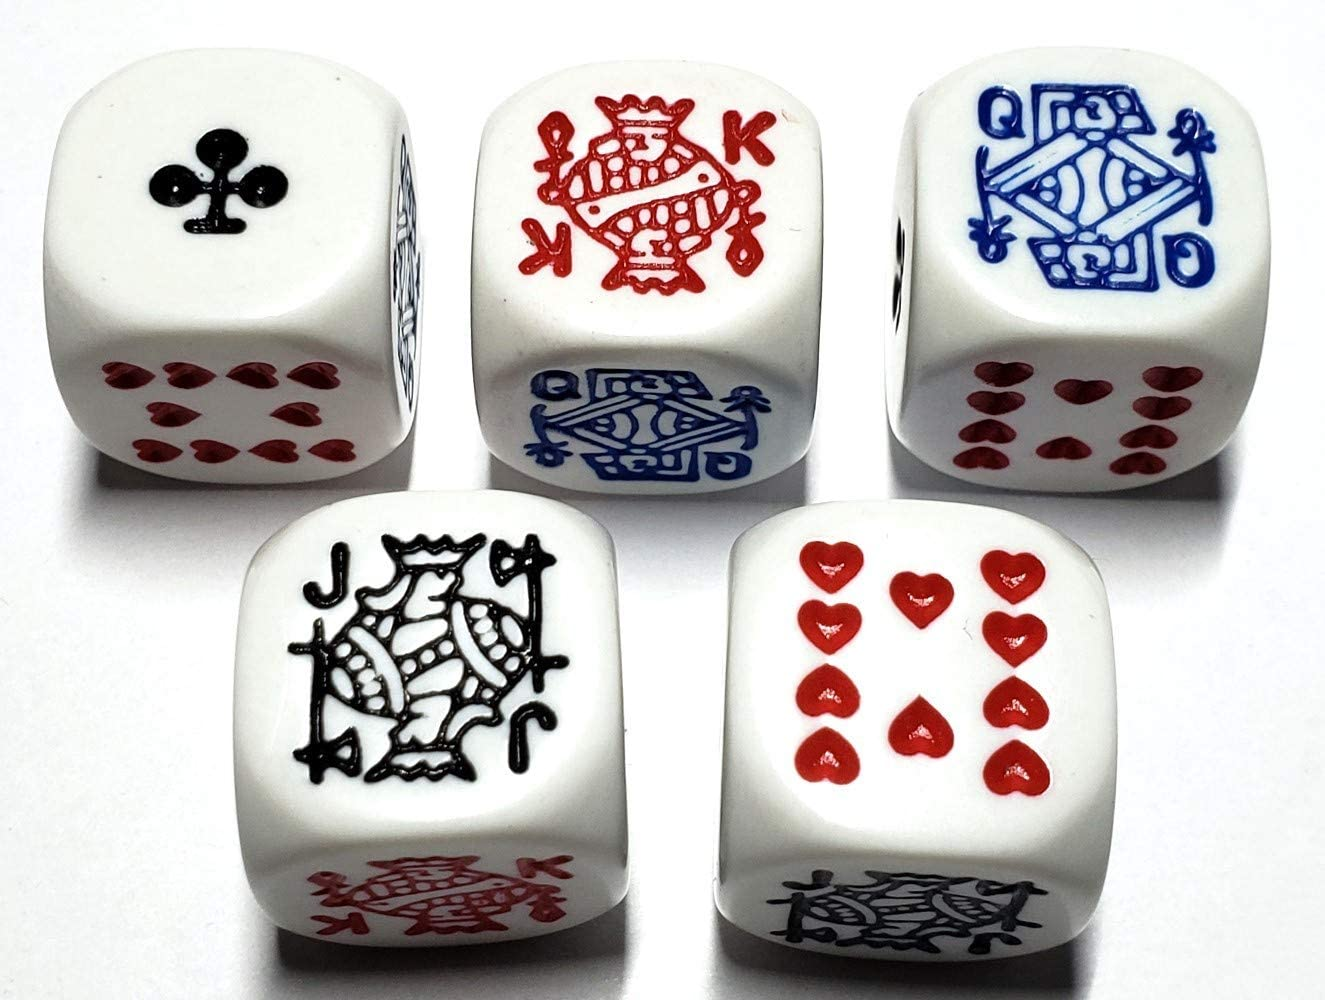 5 Cyber-Deals Las Vegas Style Premium Dice Cup Black//Red with 16mm Dice